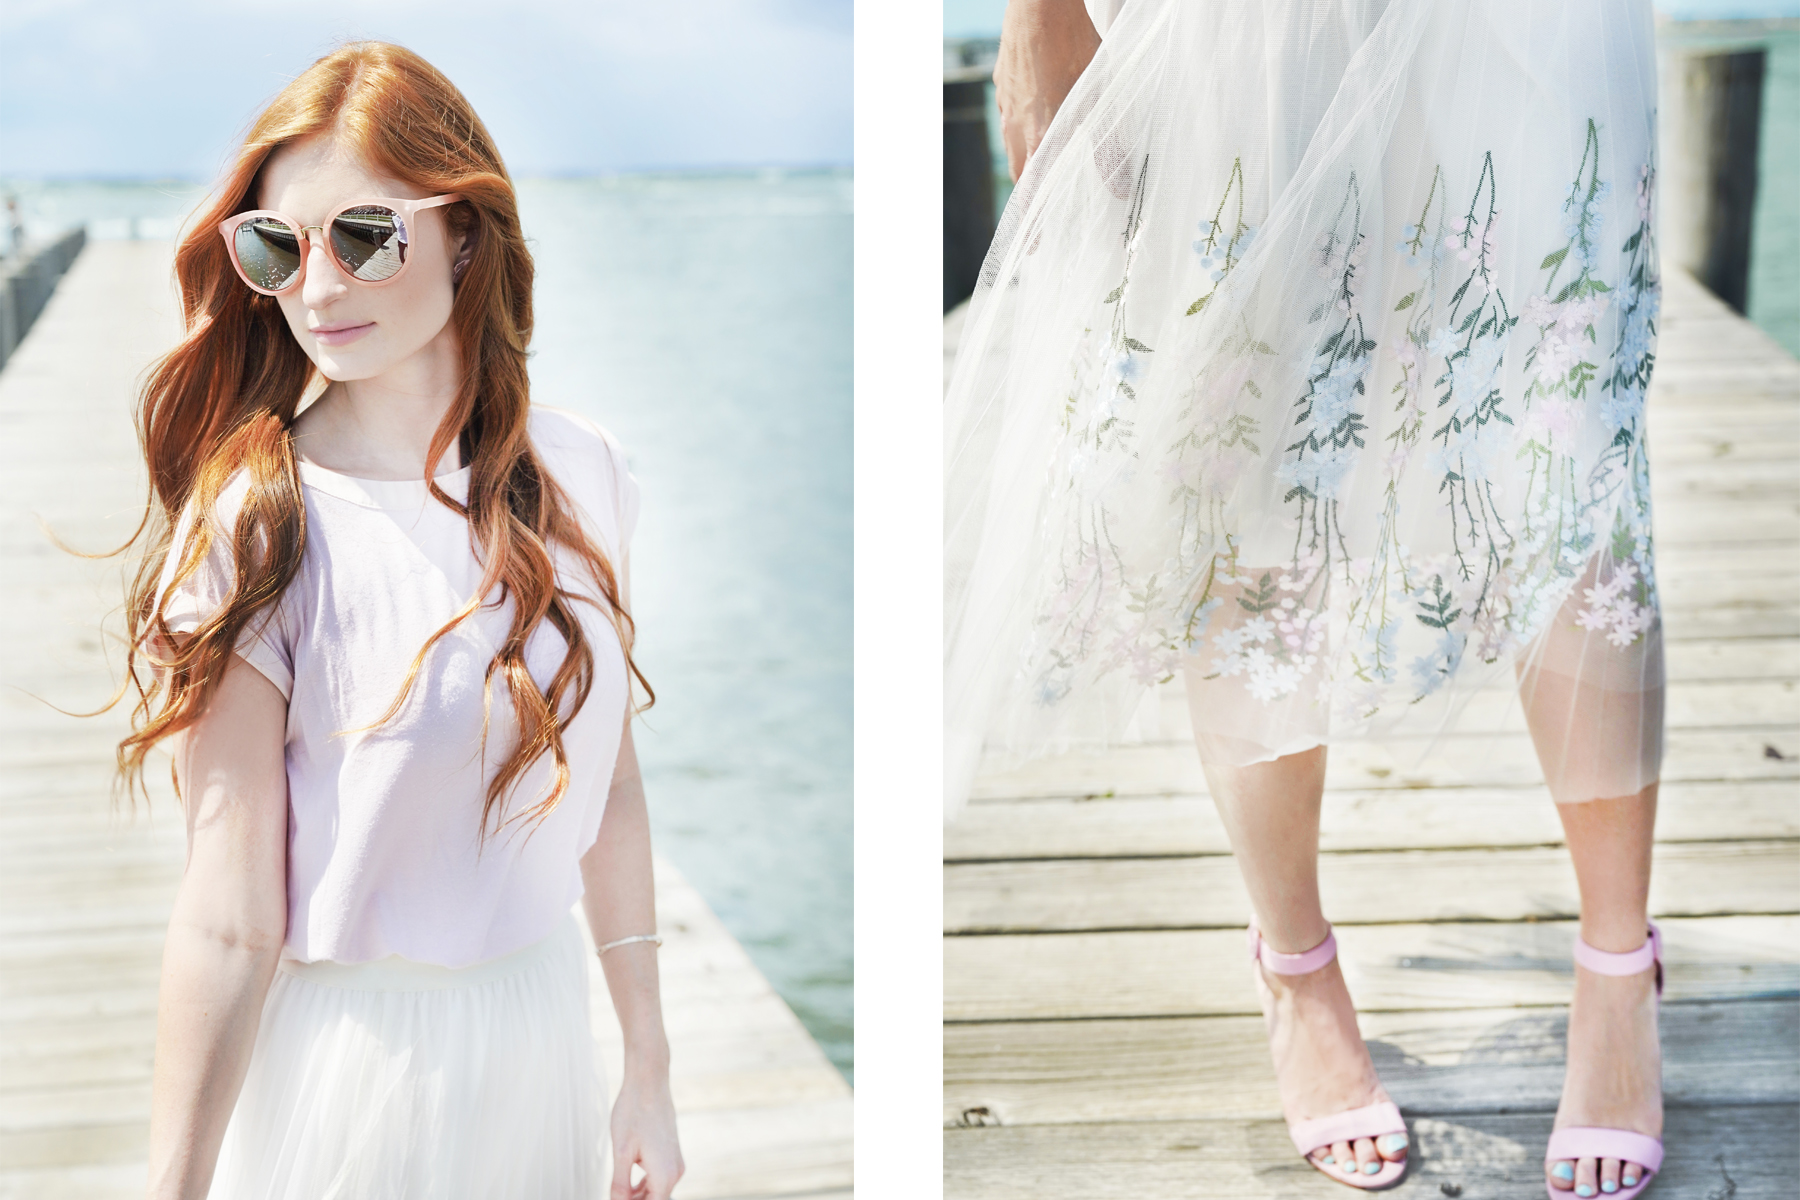 Erin Leigh She's Red Haute Romantic look hint floral wearing ivory floral skirt and pink shirt on a dock